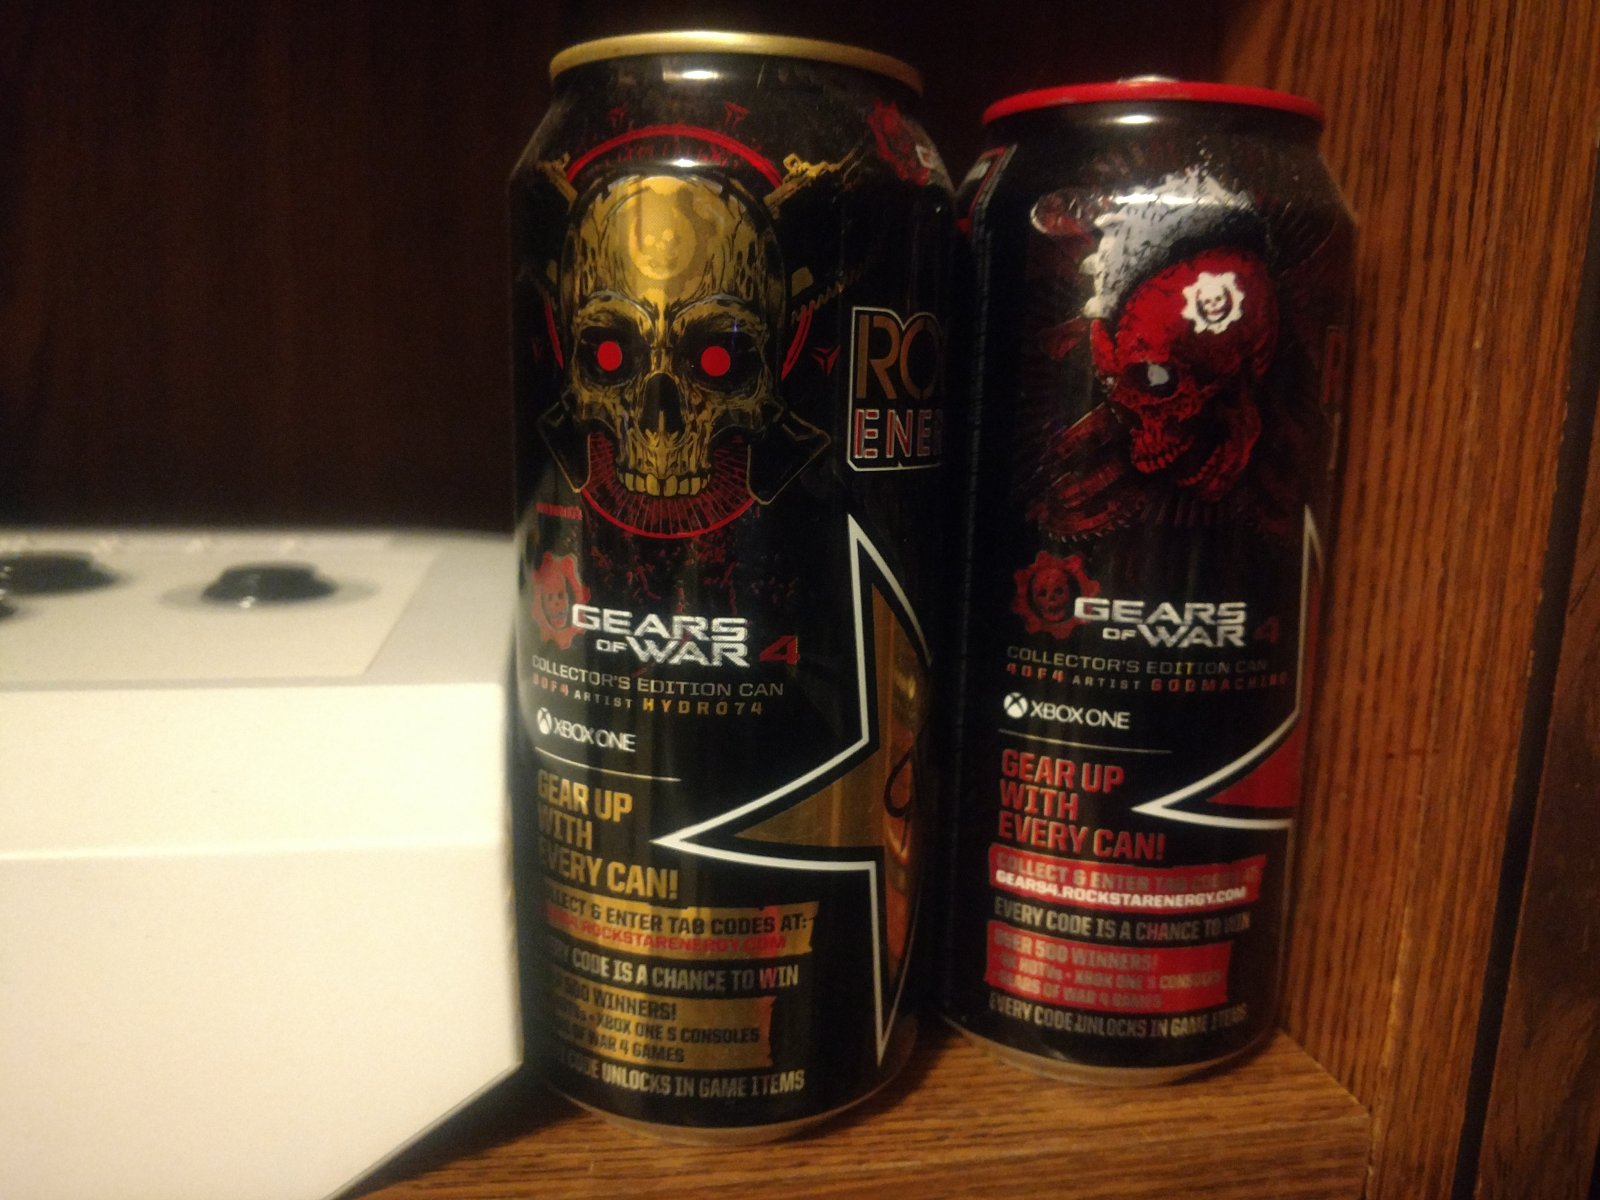 Gears of War 4 - Rockstar Energy Promotional cans 3 and 4 of 4